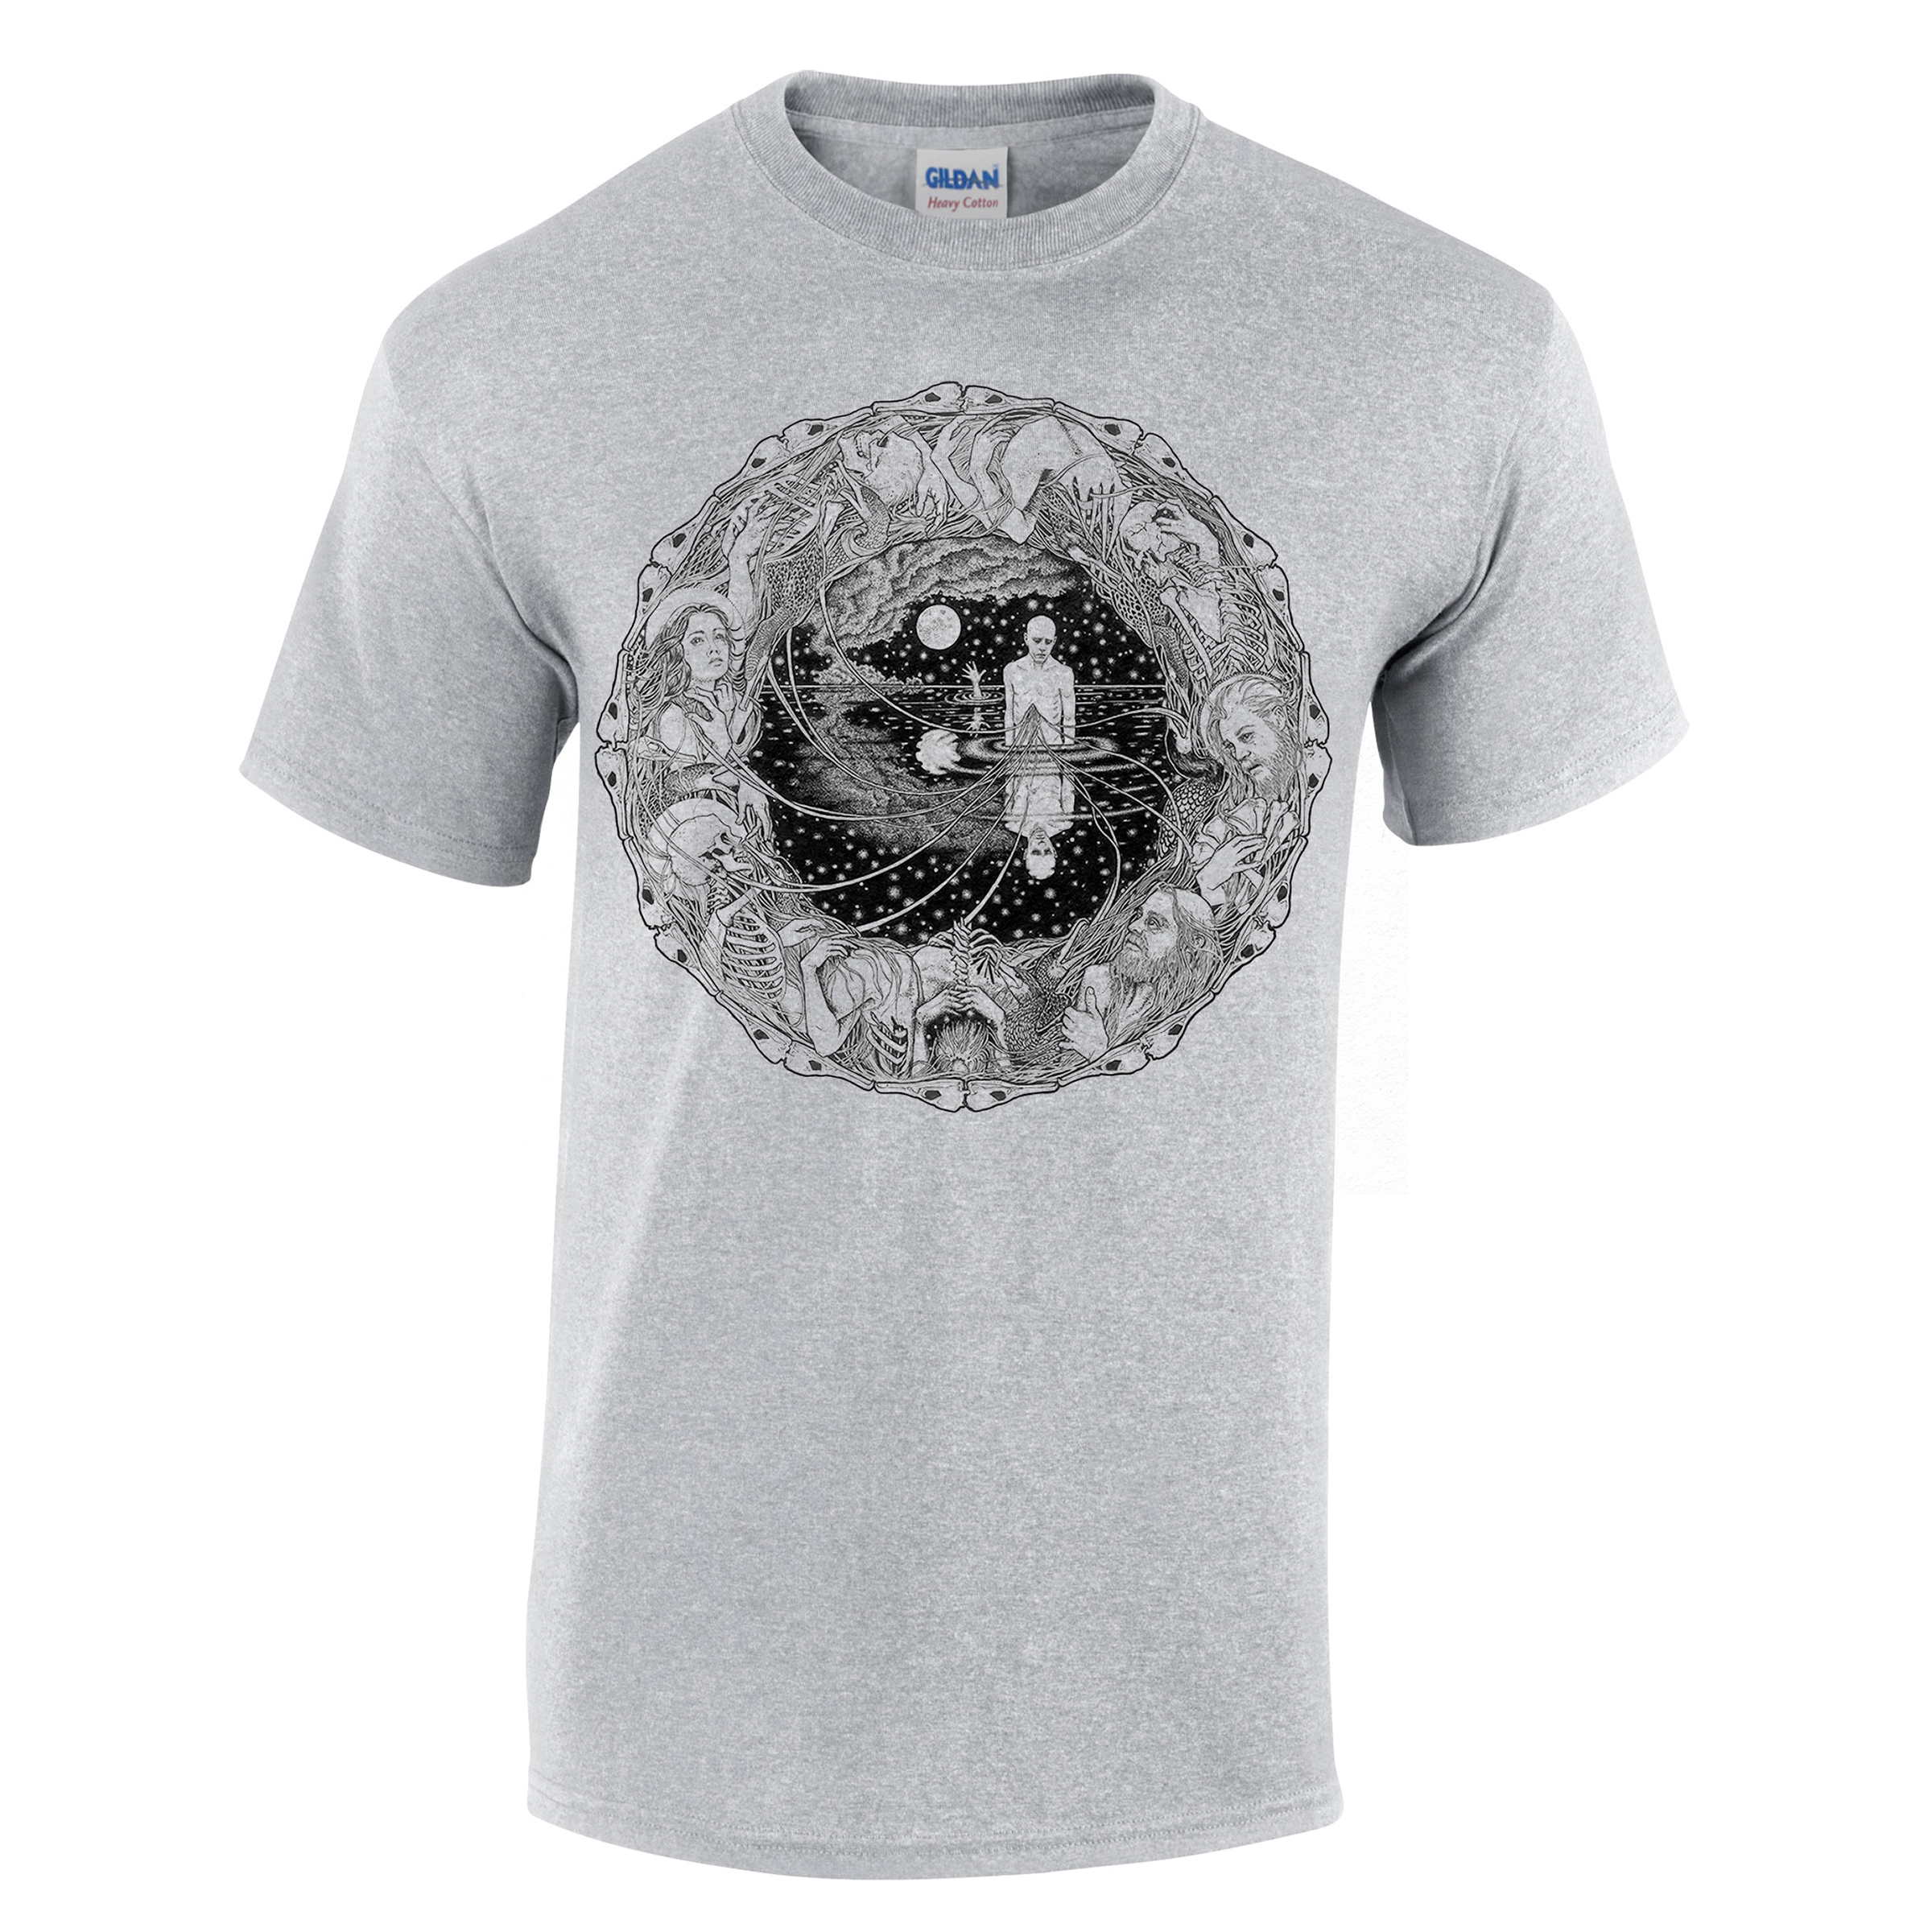 Garganjua - Through The Void shirt